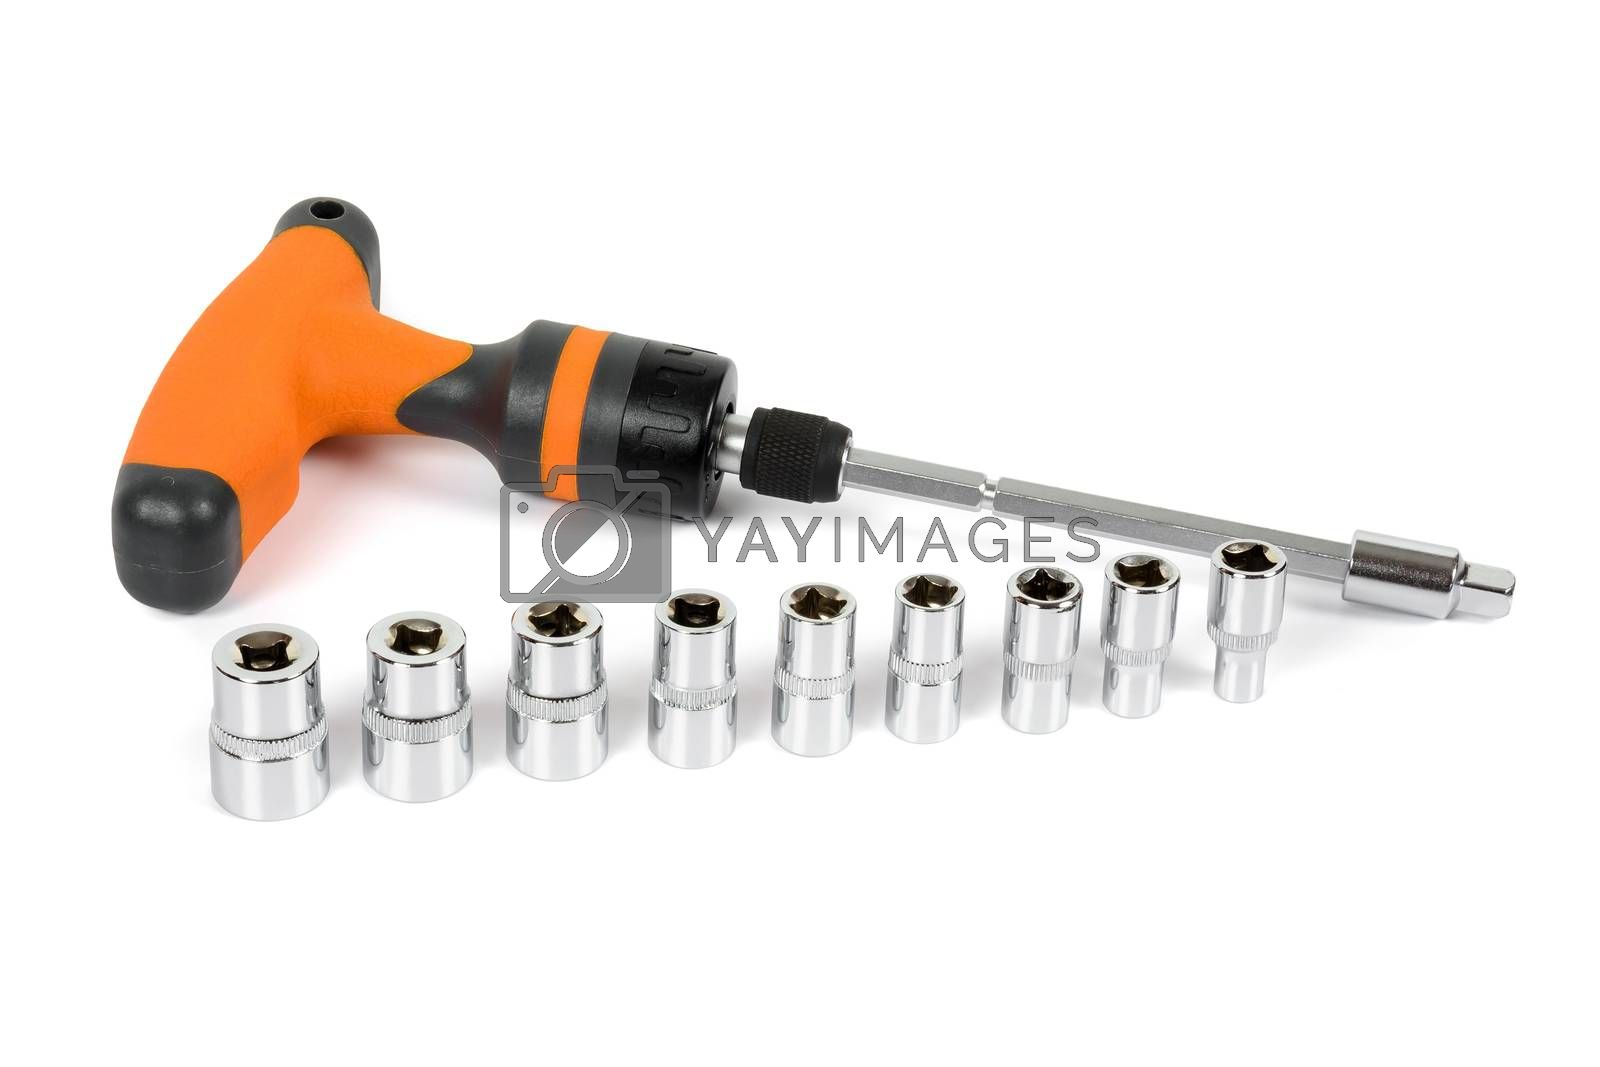 Socket spanner set isolated on white background with clipping path